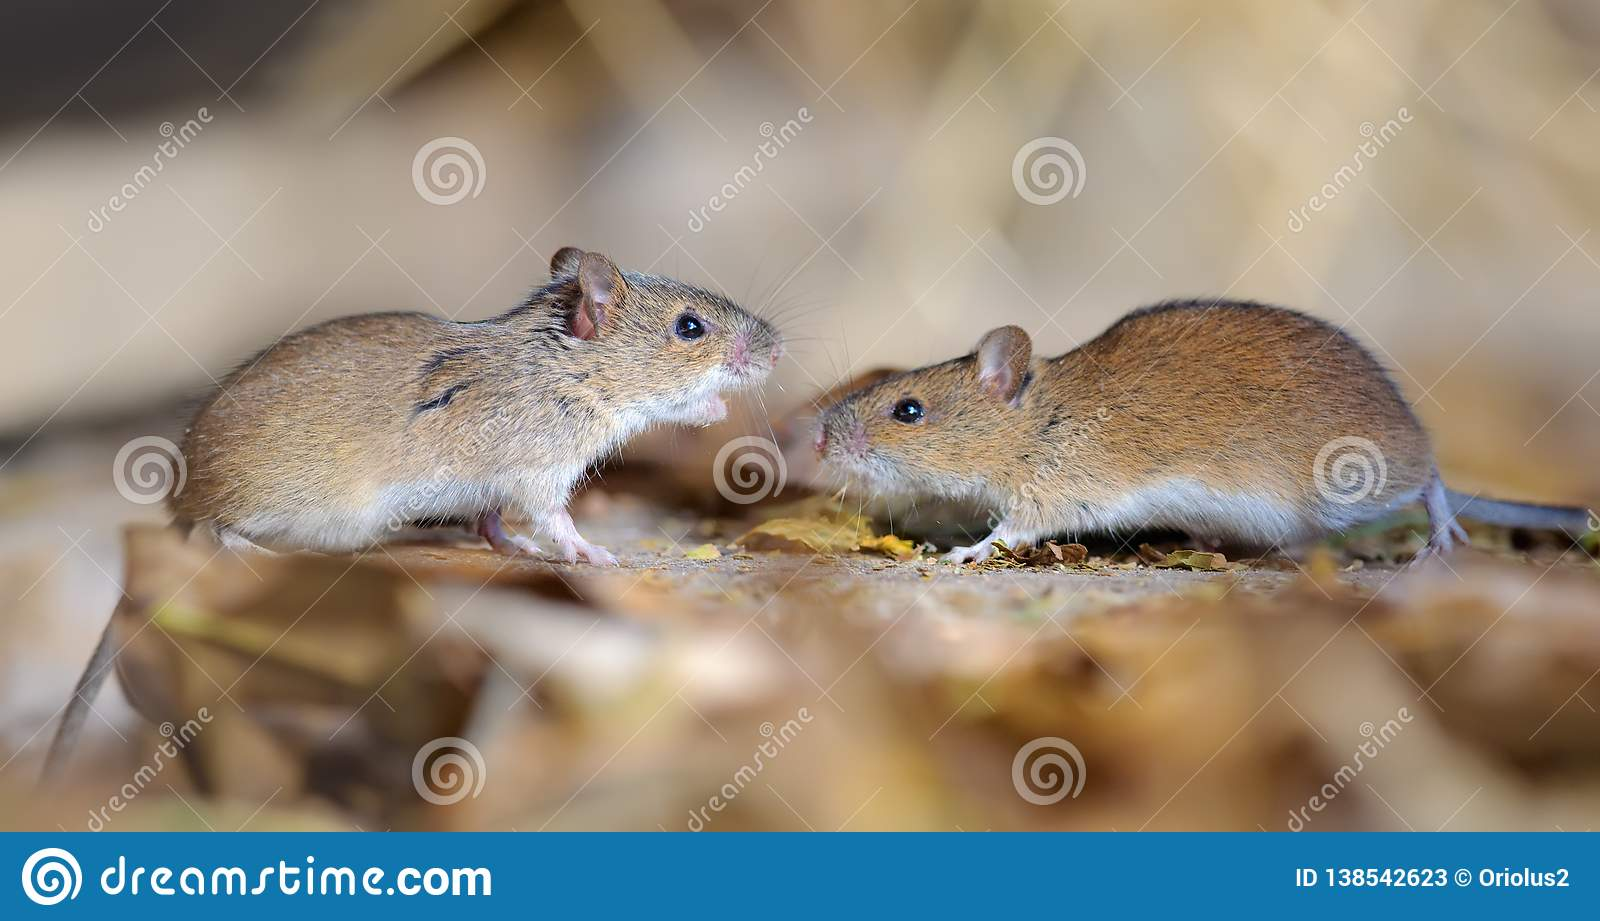 Striped field mice pair in dispute and conflict